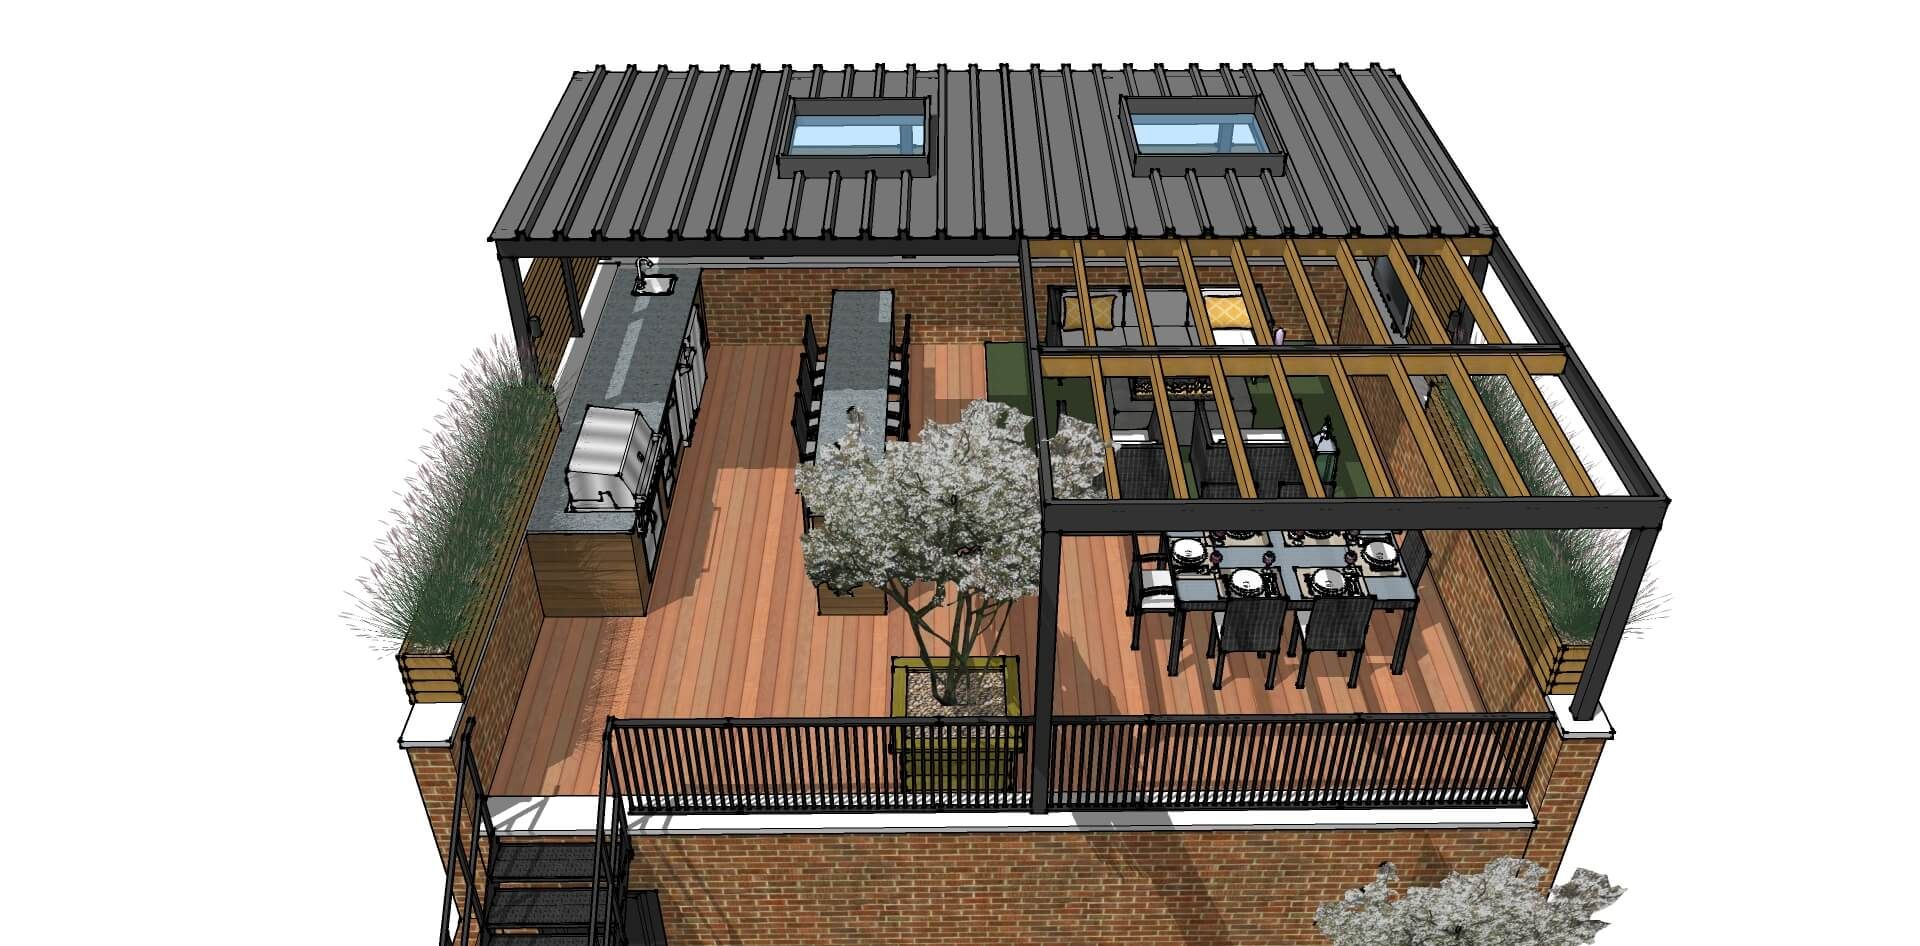 We Updated This Outdated Space In A Rooftop Deck Oasis For Our Client Modernizing The Space Was Done By Ad Rooftop Design Deck Renovation Rooftop Patio Design